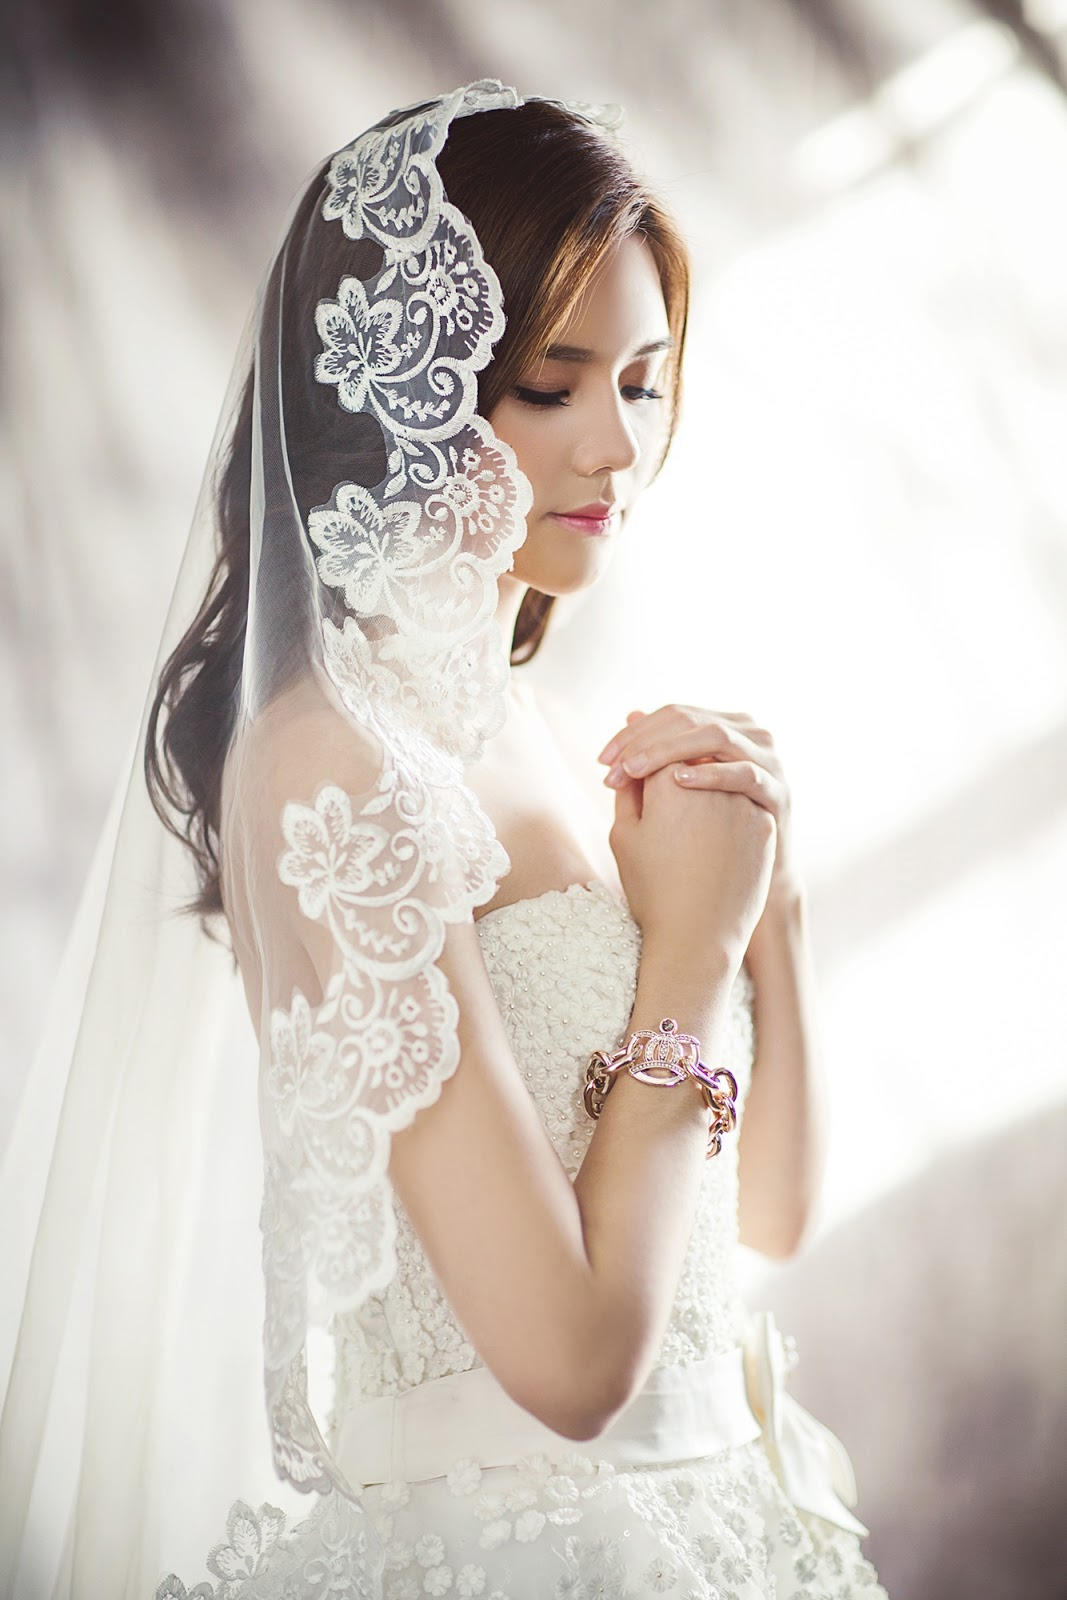 Wedding traditions and meanings wedding veil styles of the 1900s cloche veils were very popular other common styles included headband veils or veils crafted from lace or silk worn over the head and shoulders junglespirit Image collections